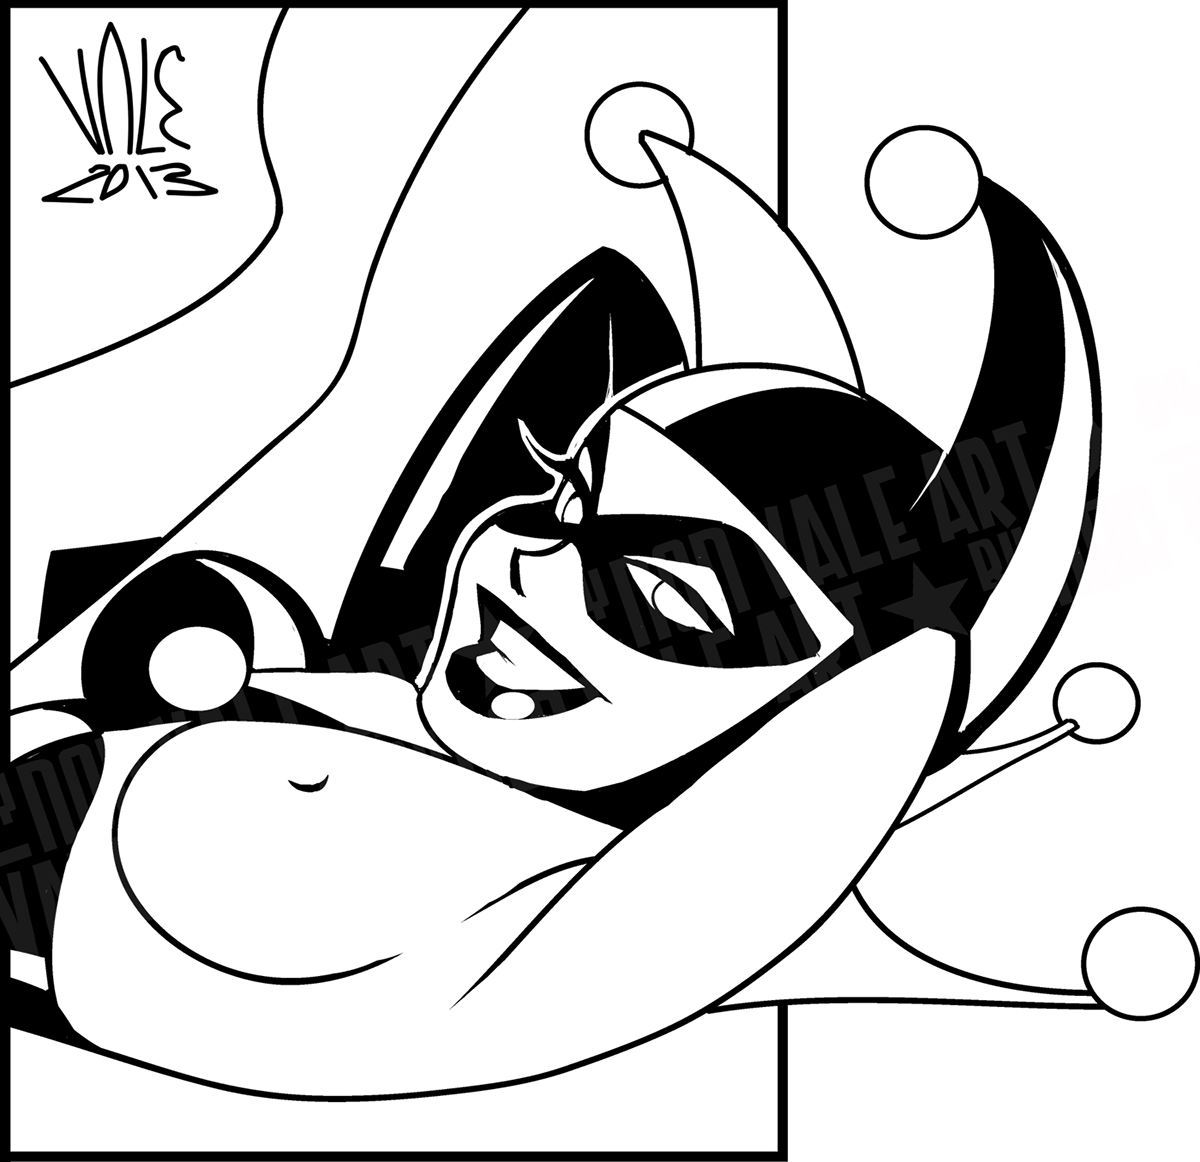 Harley Quinn In Bruce Timm S Style On Behance